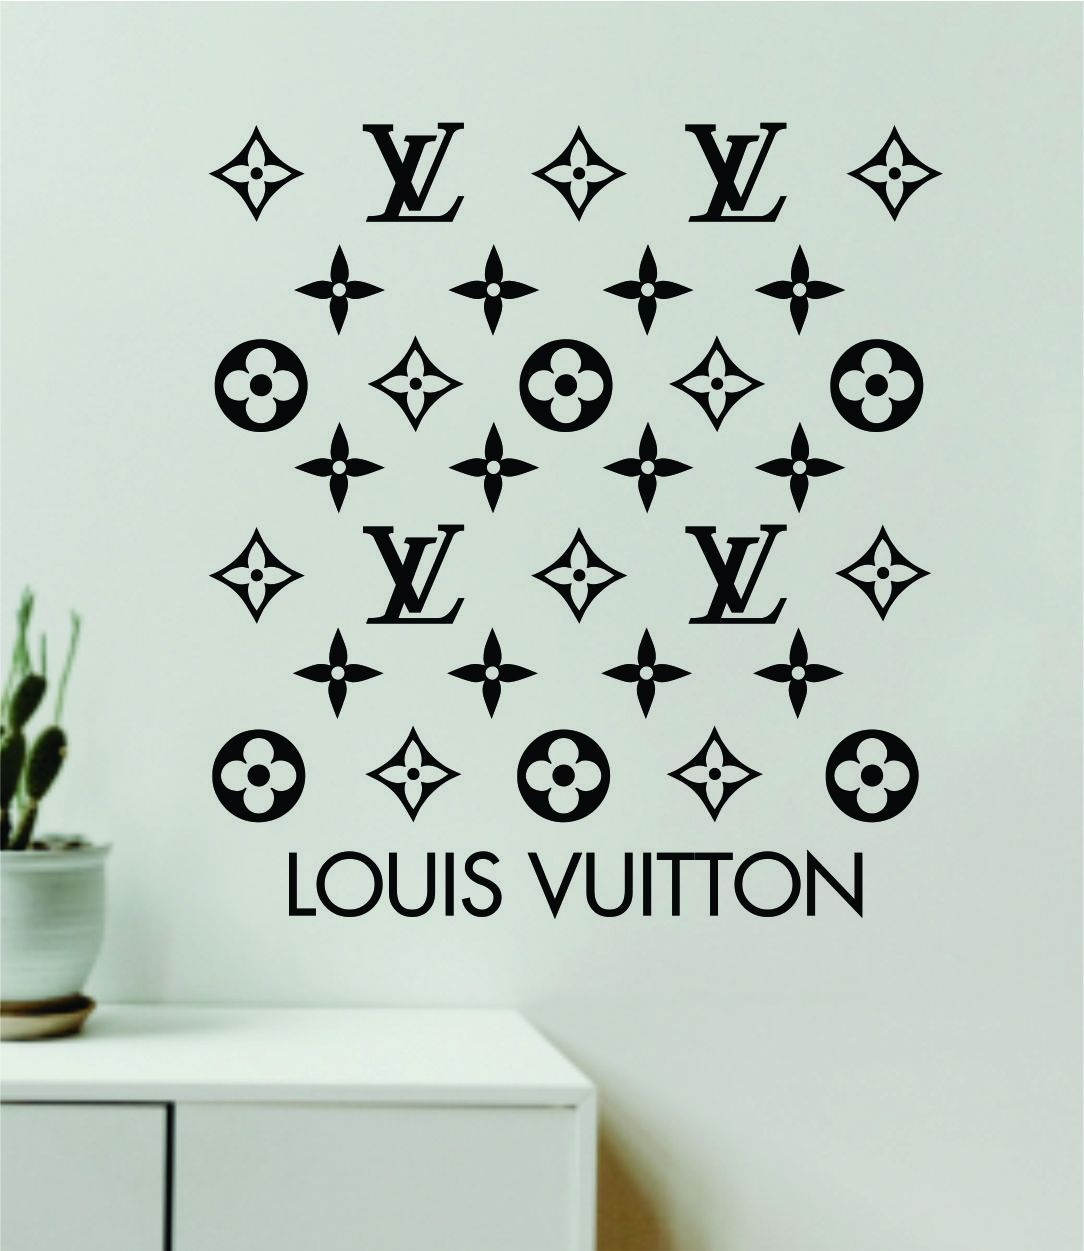 Photo of Louis Vuitton Logo Pattern V5 Wall Decal Home Decor Bedroom Room Vinyl Sticker Art Quote Designer Brand Luxury Girls Cute Expensive LV – white